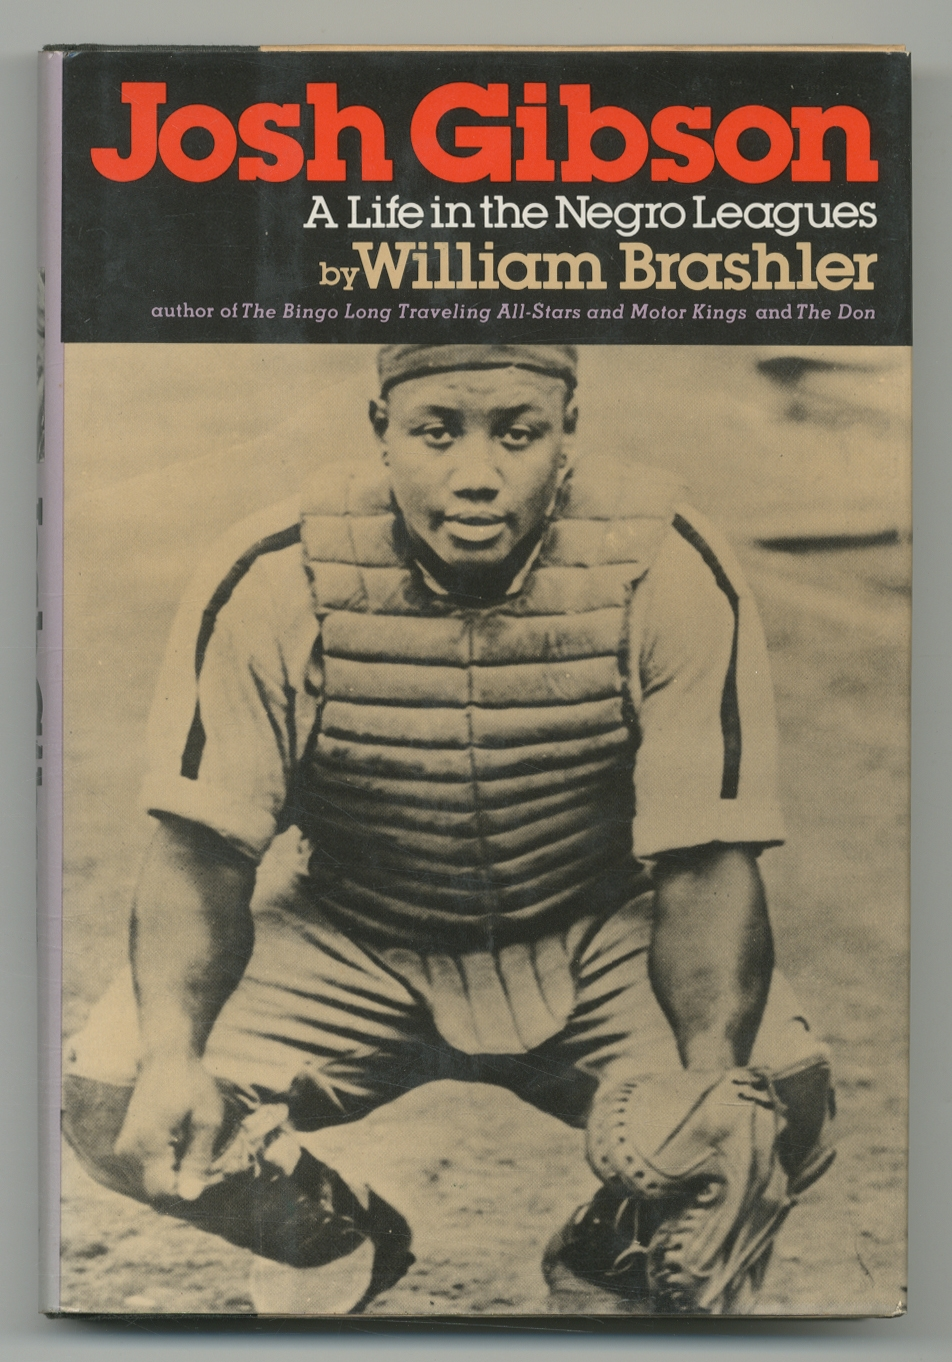 Josh Gibson A Life in the Negro Leagues by BRASHLER, William - josh gibson md